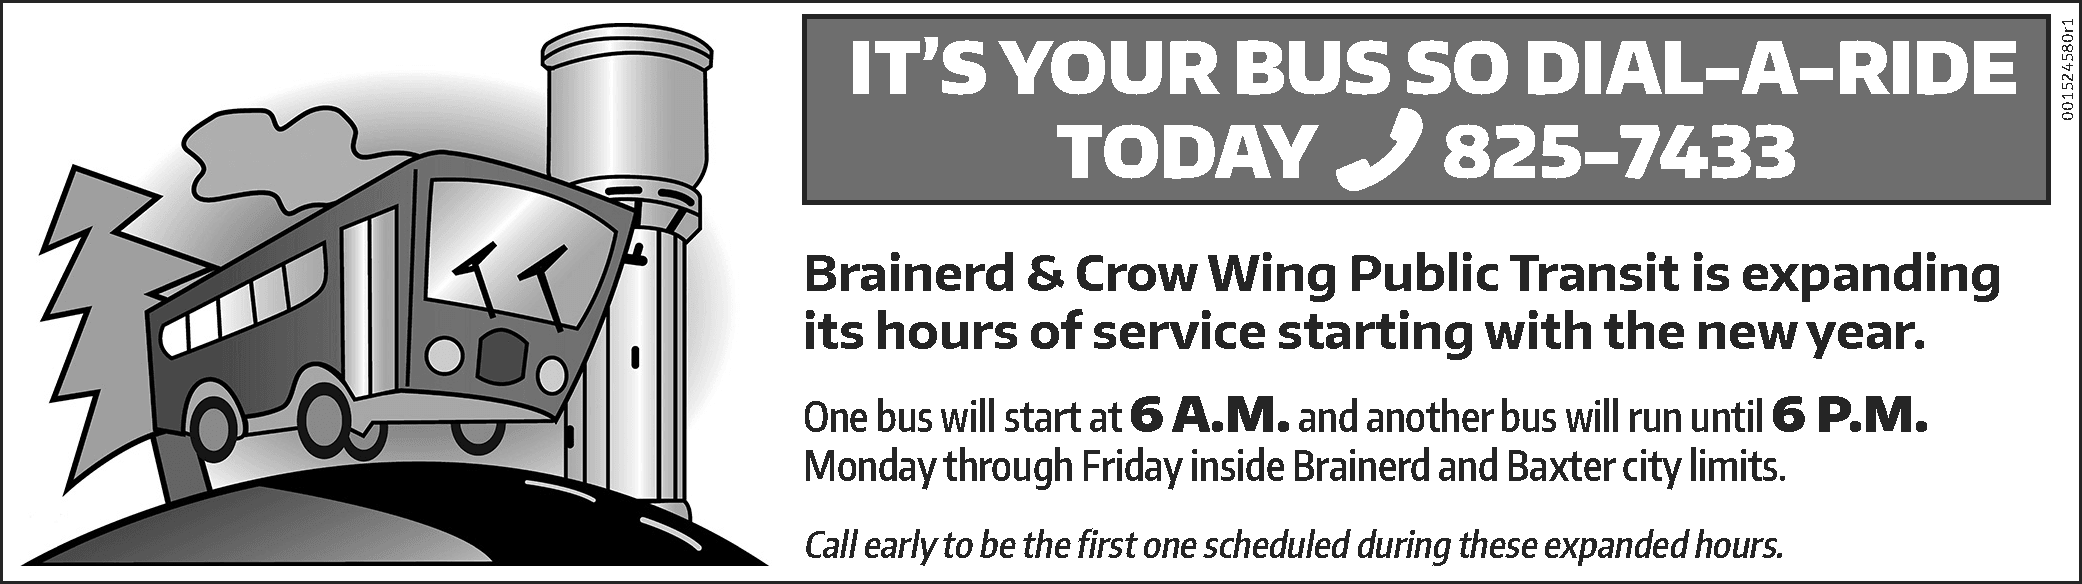 Expanded hours of service 6am to 6pm